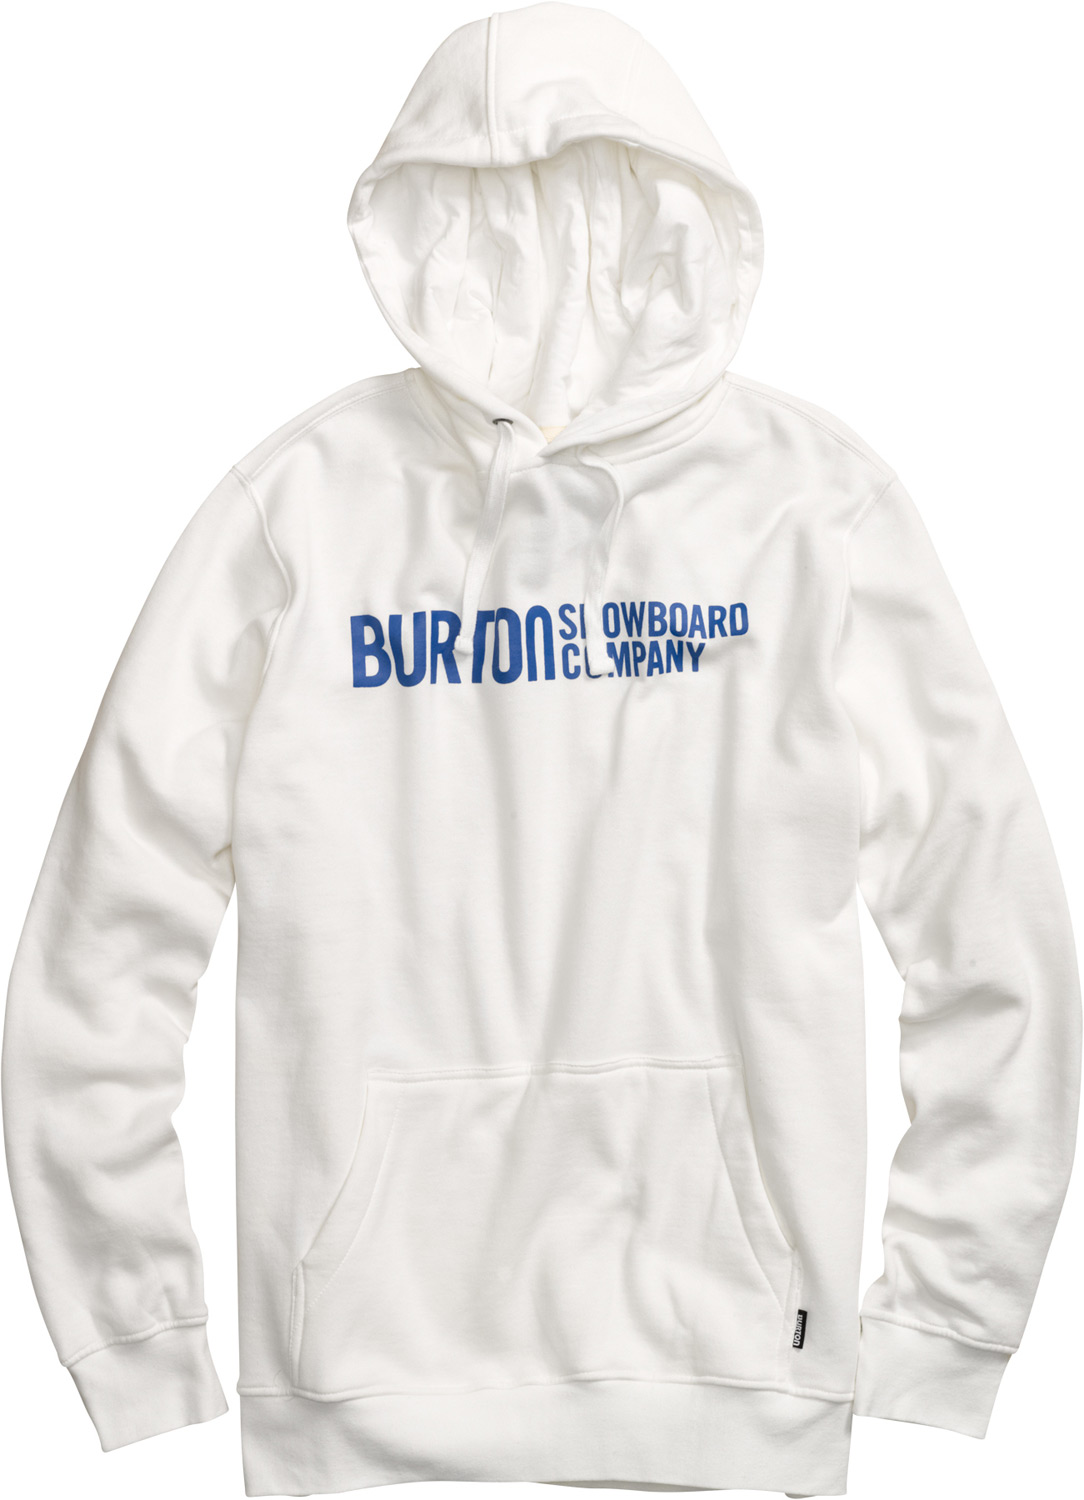 Snowboard Key Features of the Burton Classic Horizontal Pullover Hoodie: 80% Cotton, 20% Polyester, 300G Fleece Kangaroo Pocket with Interior Media Stash Screen Print on Chest Regular Fit - $32.95